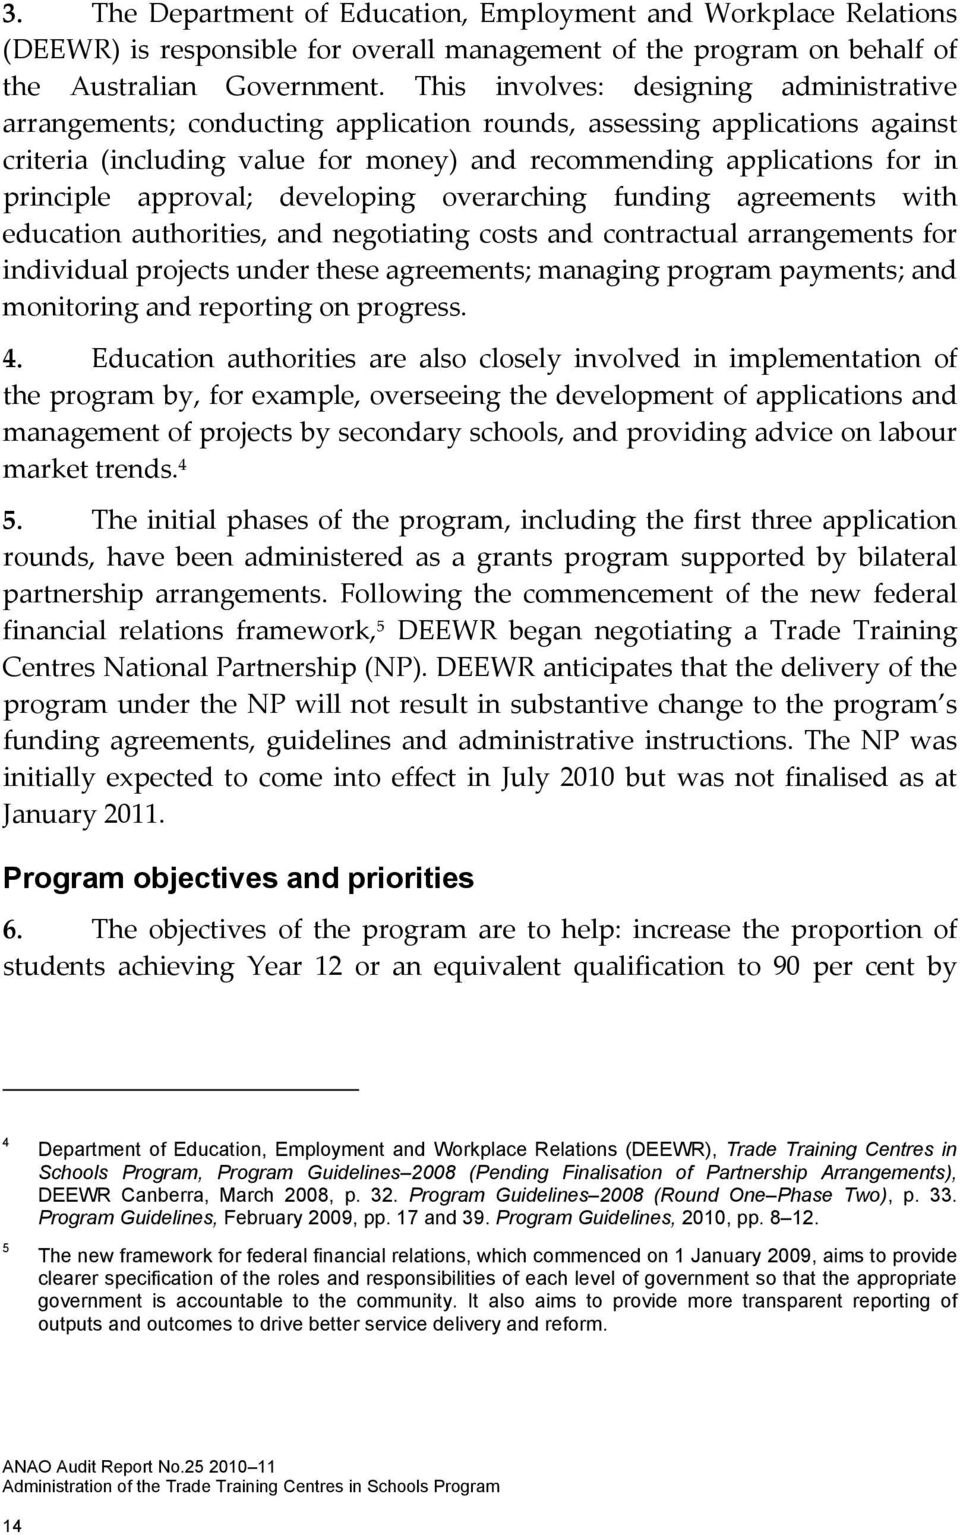 approval; developing overarching funding agreements with education authorities, and negotiating costs and contractual arrangements for individual projects under these agreements; managing program